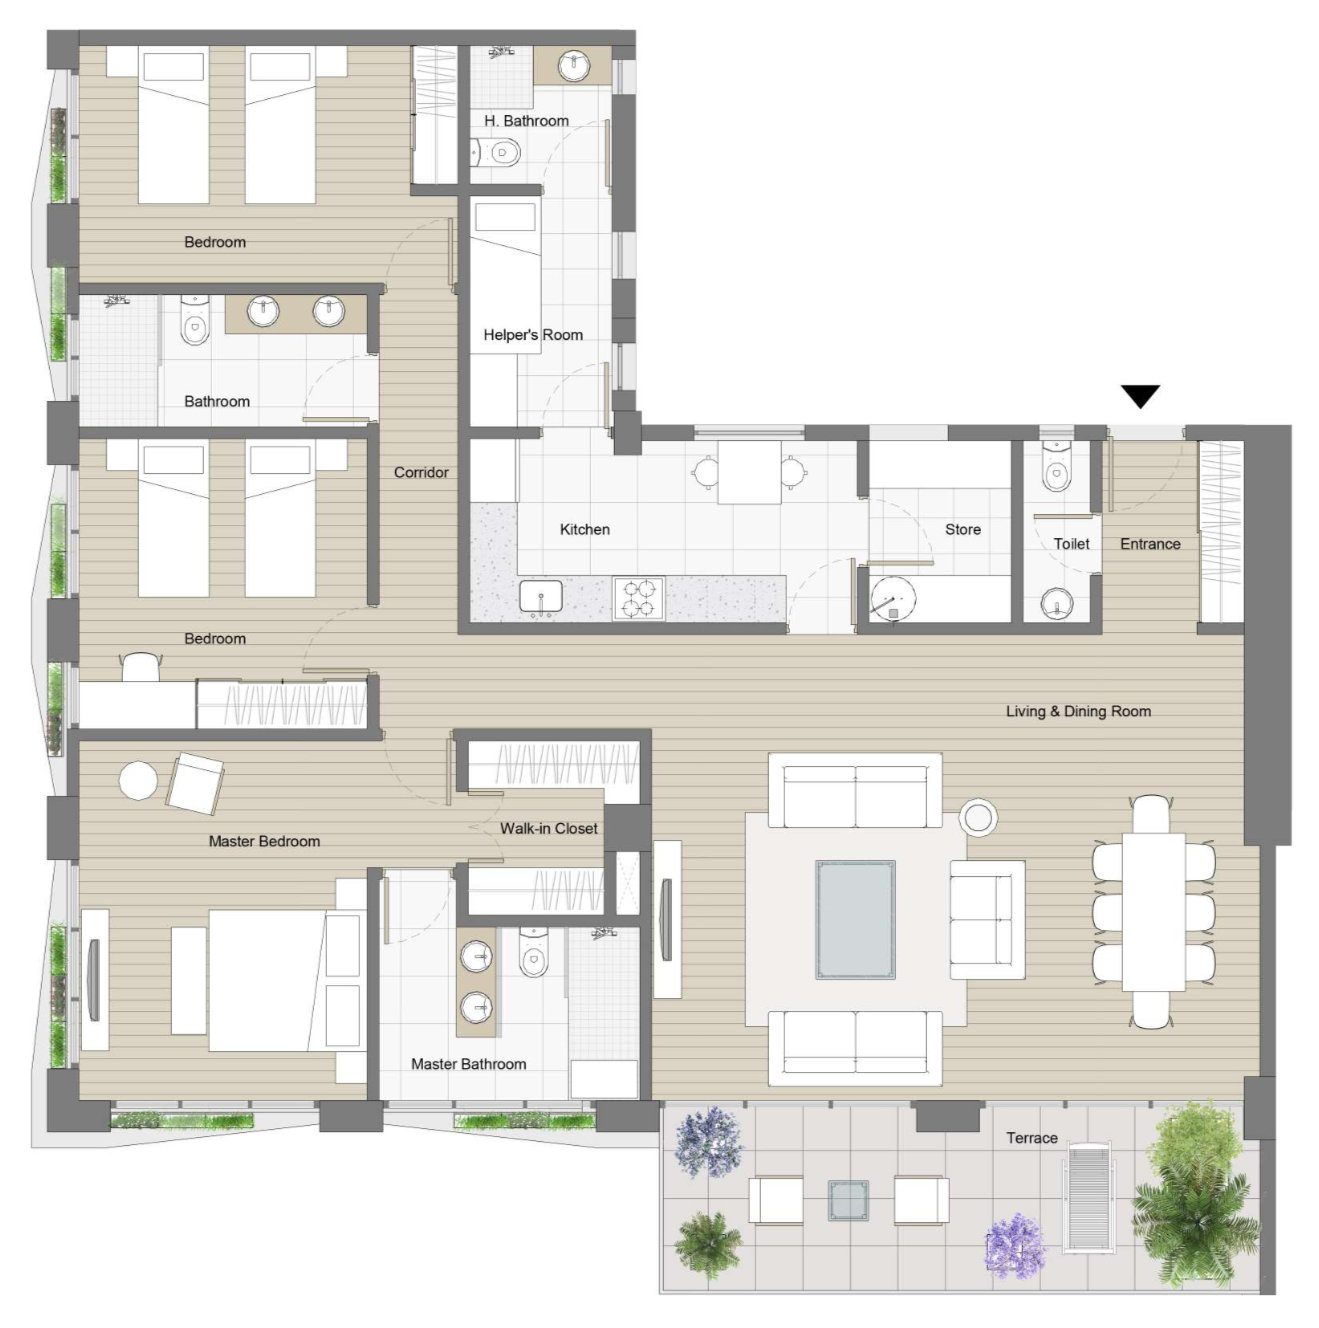 Plan of a three bedroom apartment with helpers quarters in Kefita, Addis Ababa